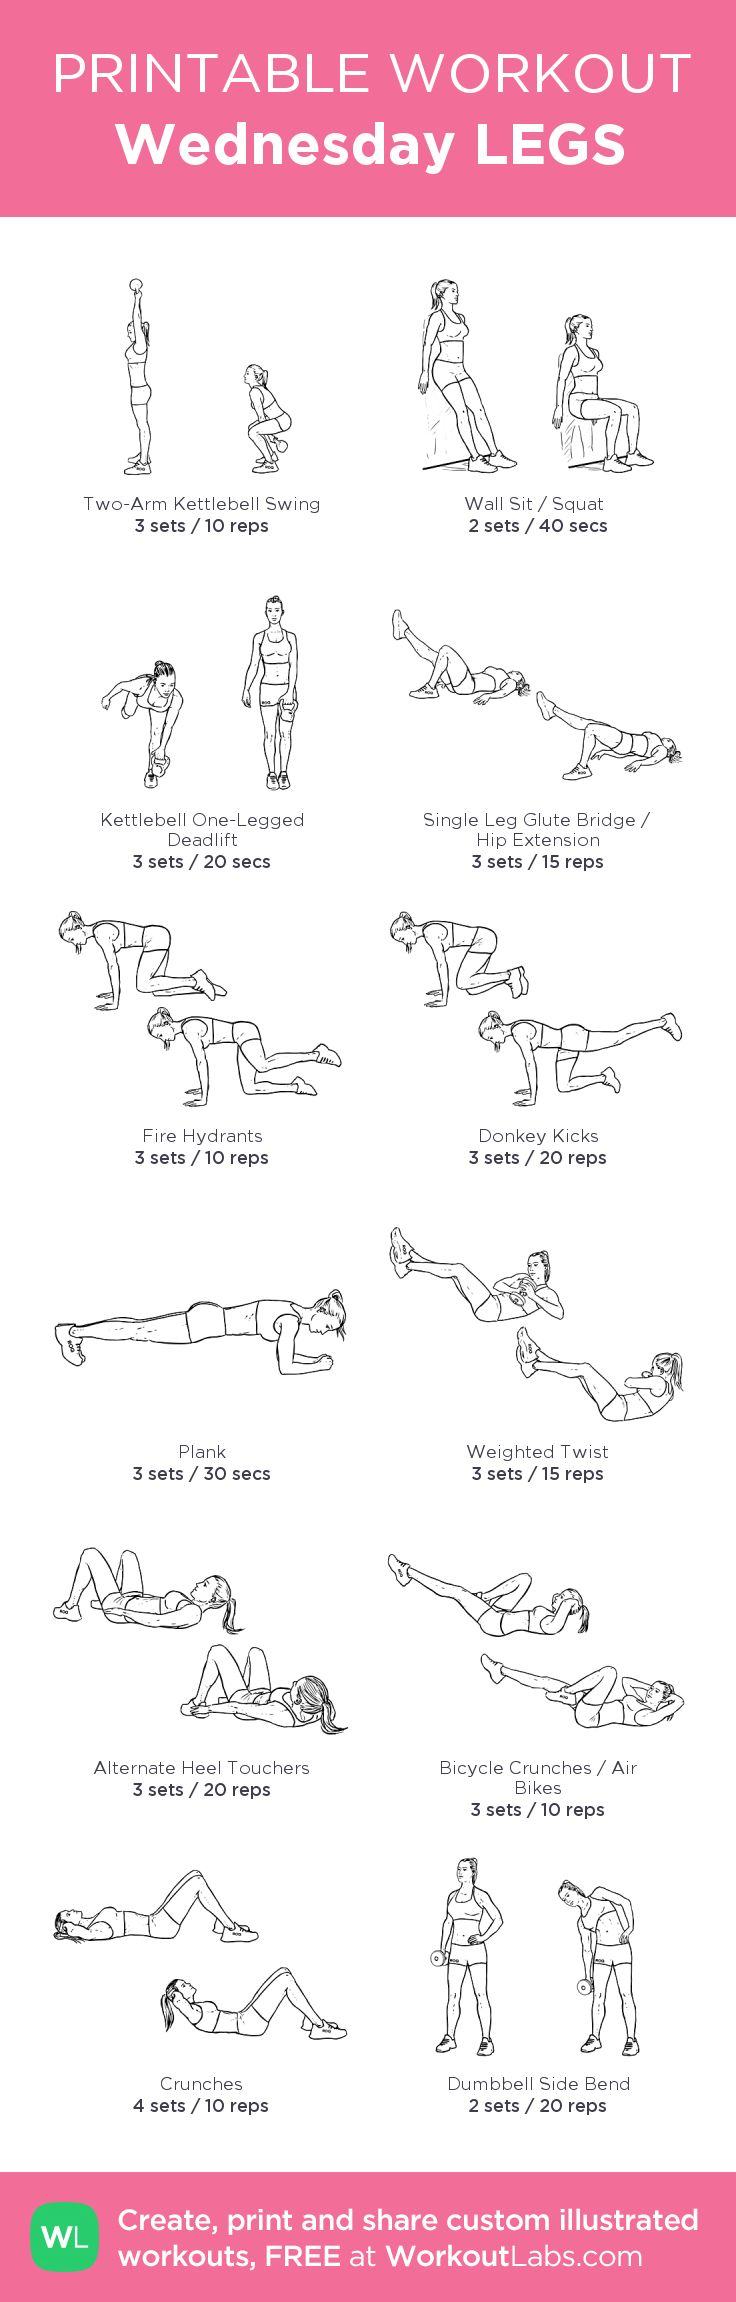 Wednesday LEGS:my custom printable workout by @WorkoutLabs #workoutlabs #customworkout